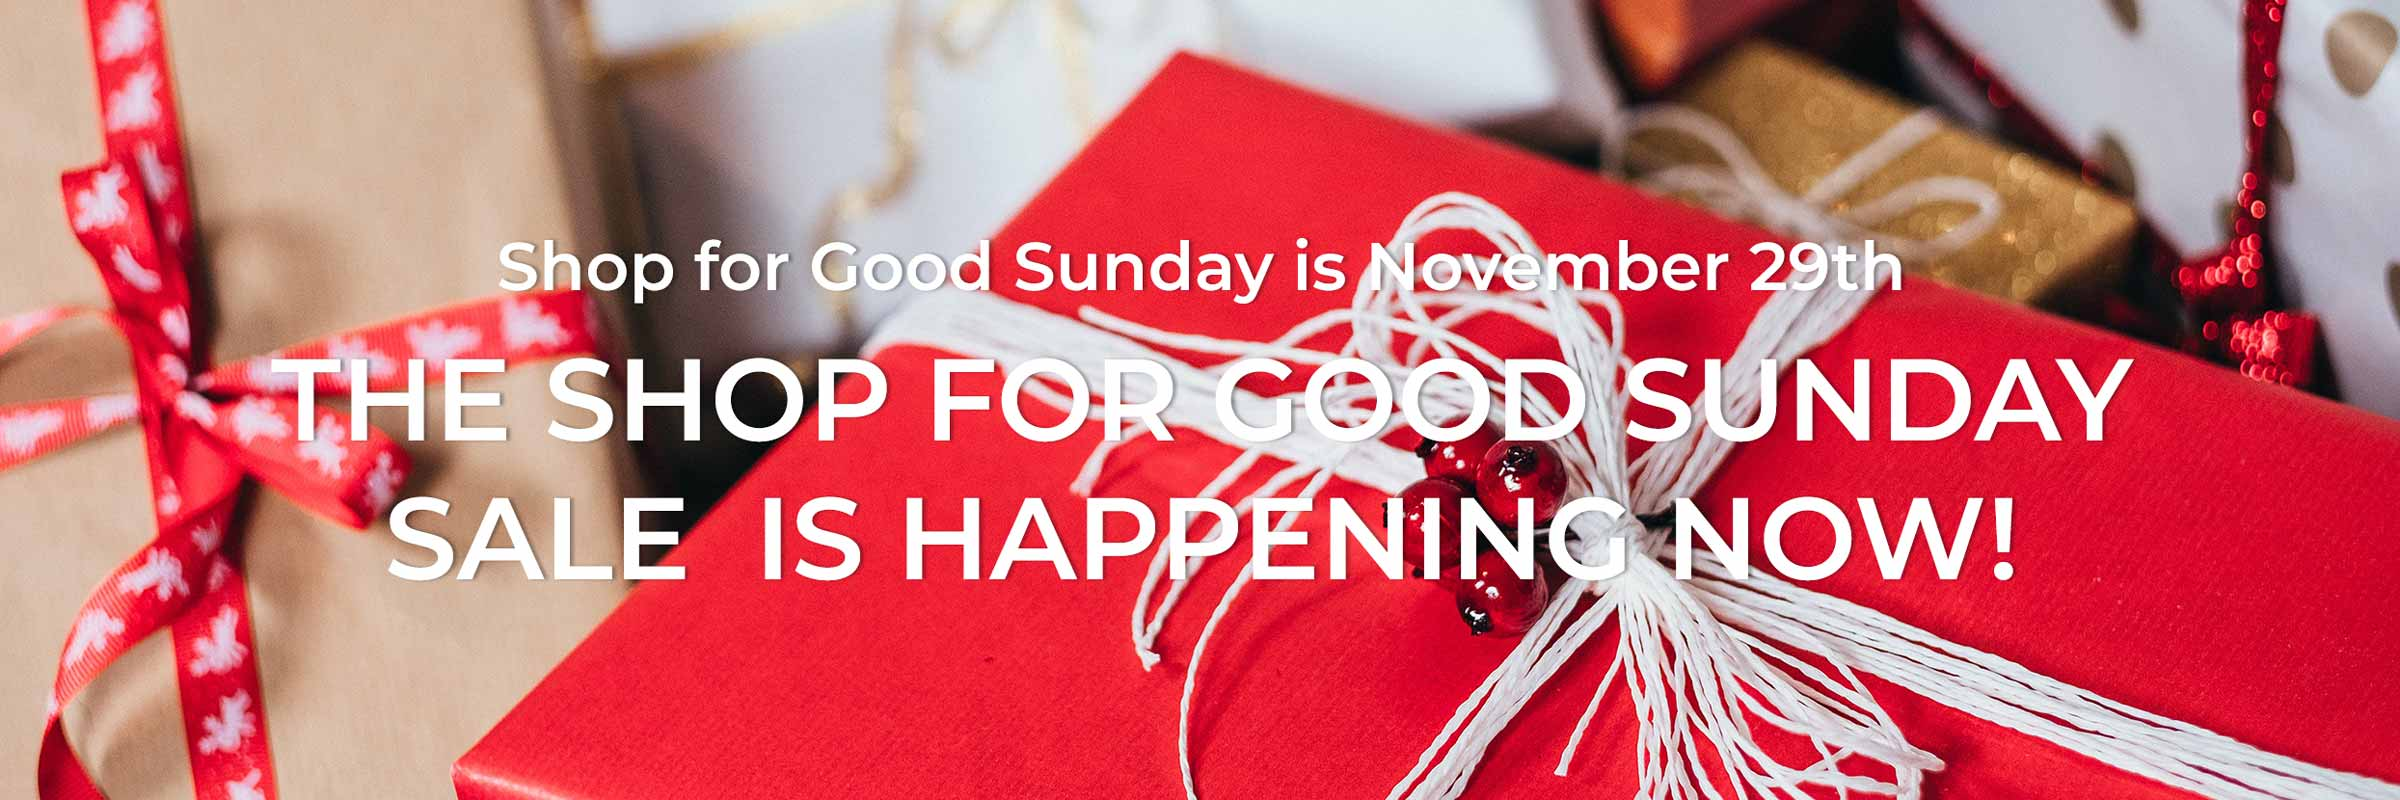 Shop for Good Sunday is November 29th. Use your holiday shopping for good.